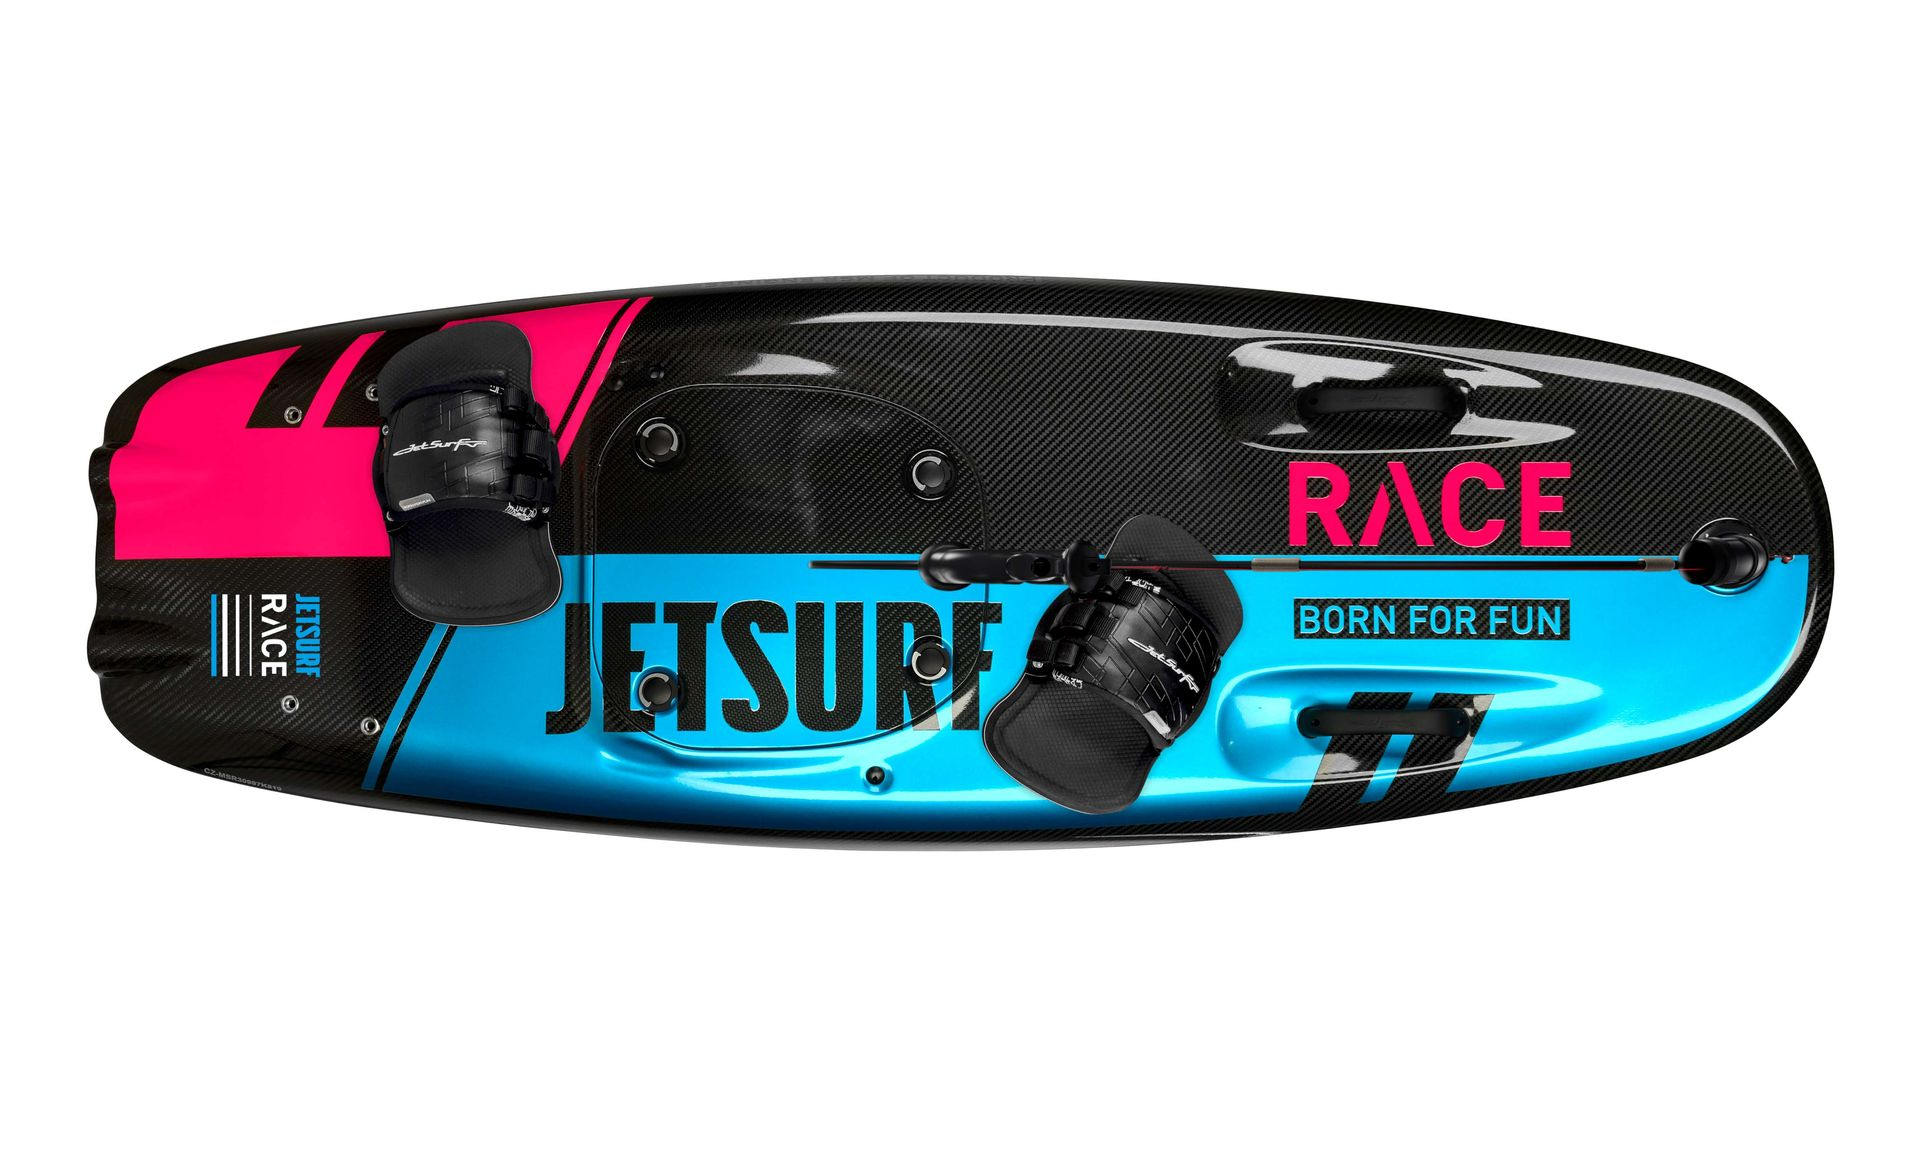 JetSurf Motorized Sufboard Race